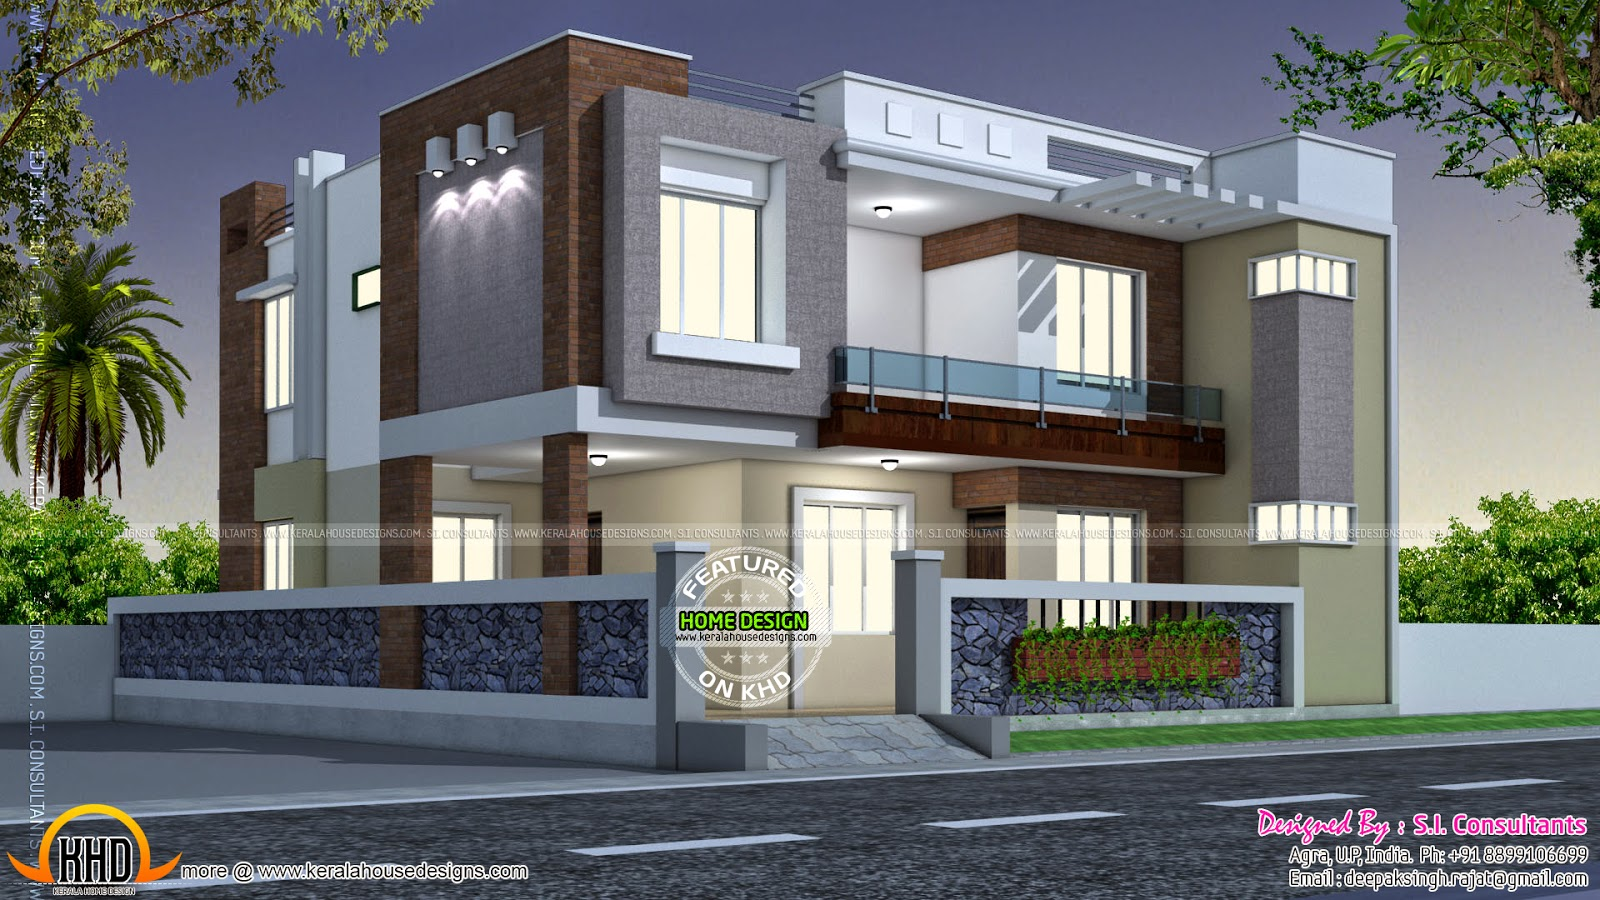 House plans and design modern house plans for india for Best architecture home design in india